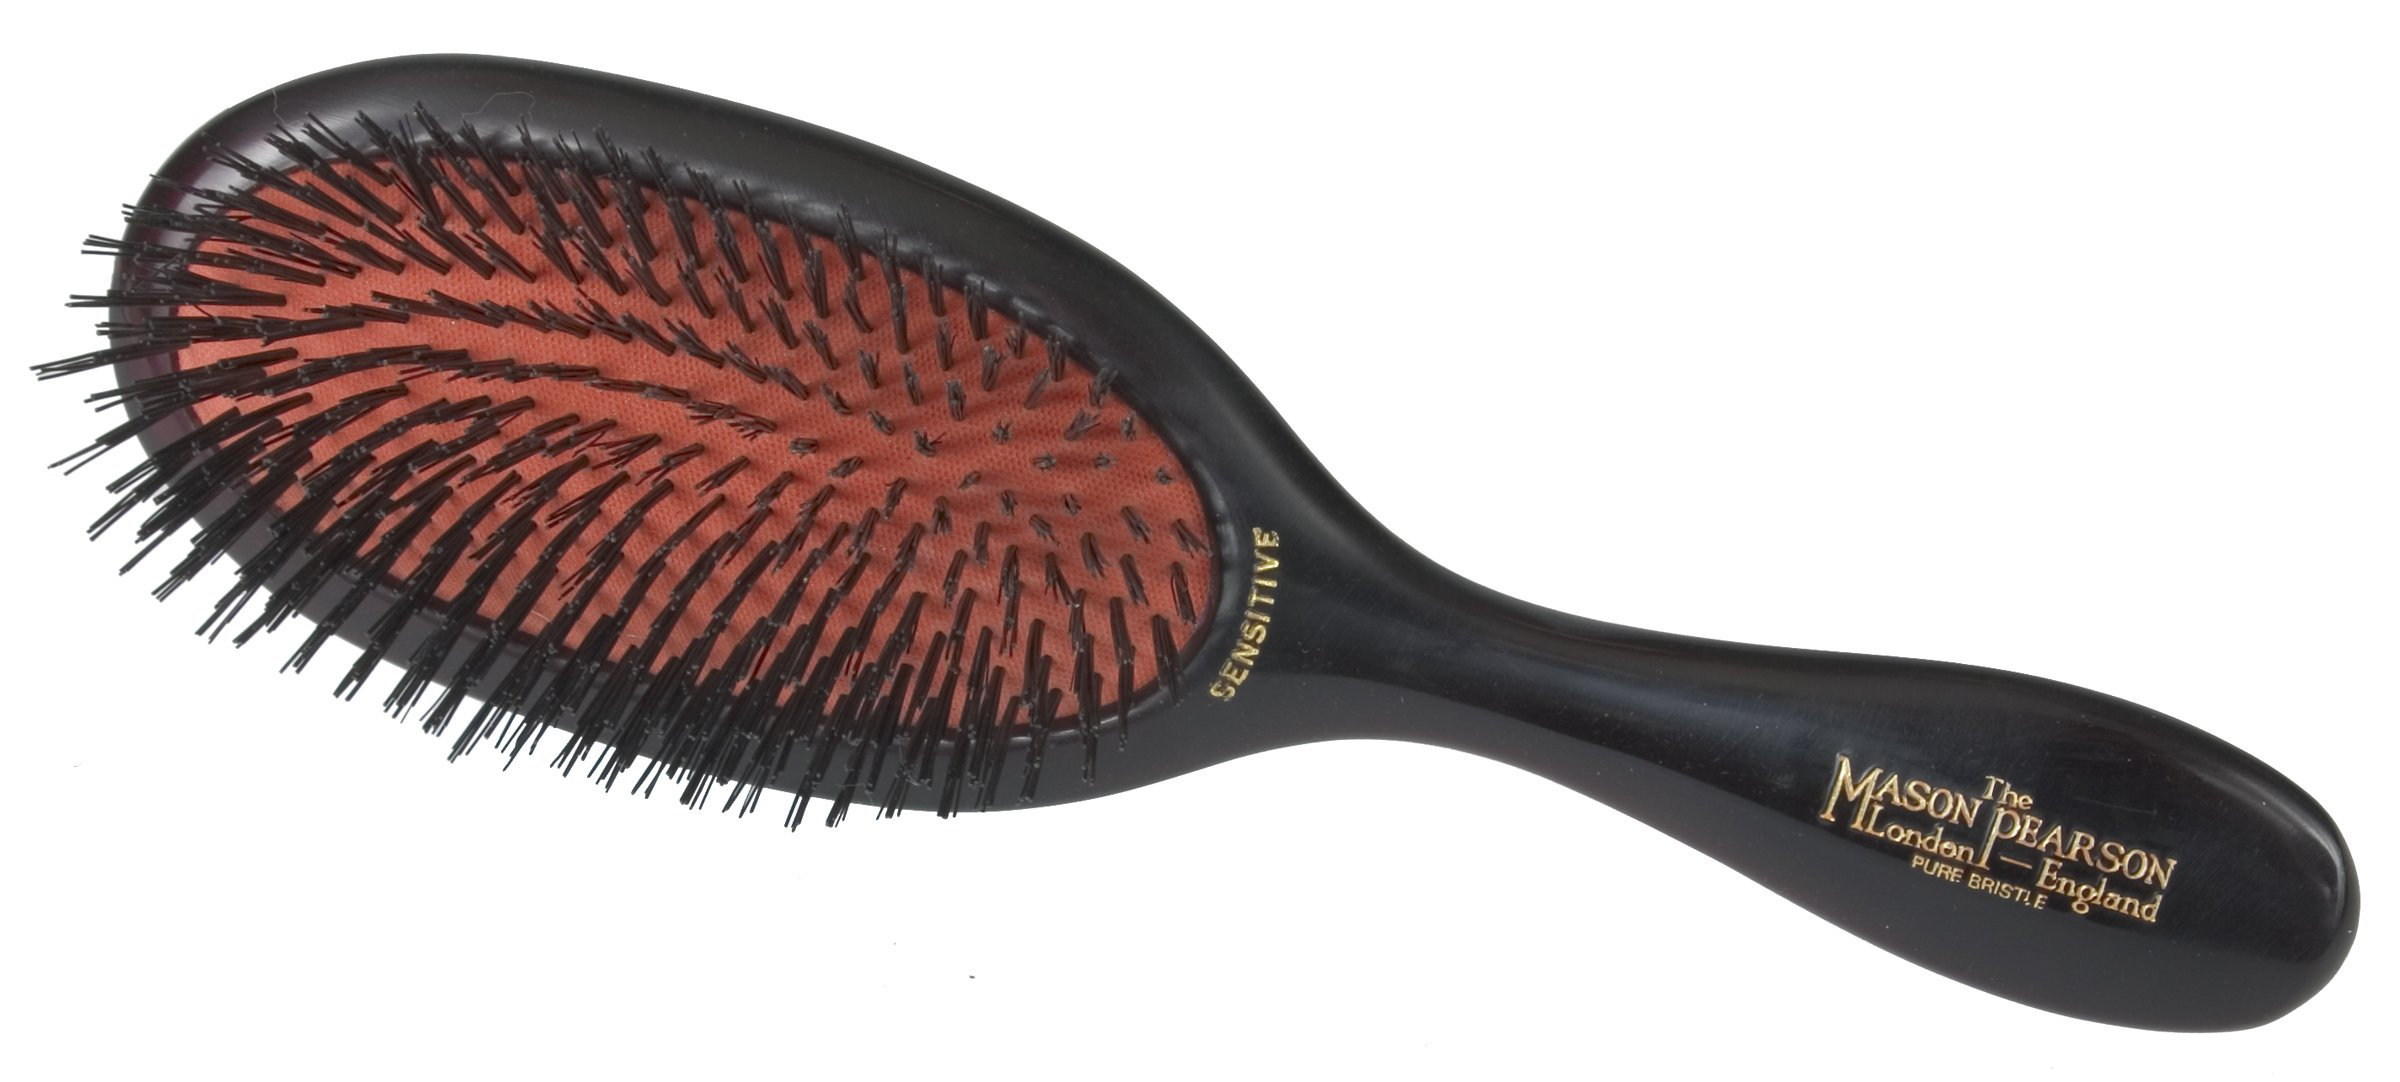 Mason Pearson Sensitive Boar Bristle Hairbrush - 71TuS  iv9L - Mason Pearson Sensitive Boar Bristle Hairbrush